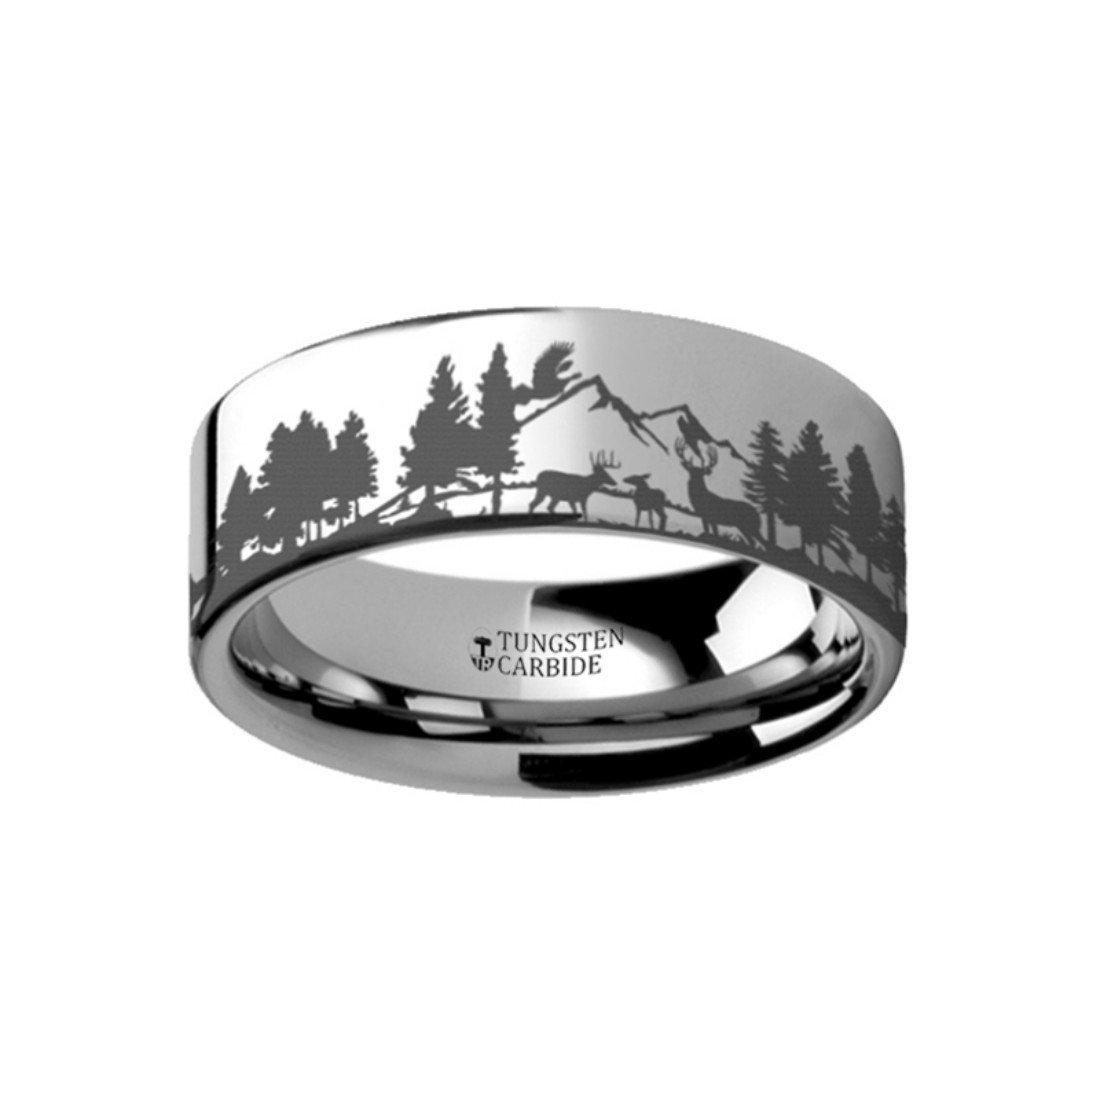 Thorsten Animal Nature Landscape Reindeer Deer Stag Mountain Range Ring Tungsten Ring 10mm Wide Wedding Band from Roy Rose Jewelry